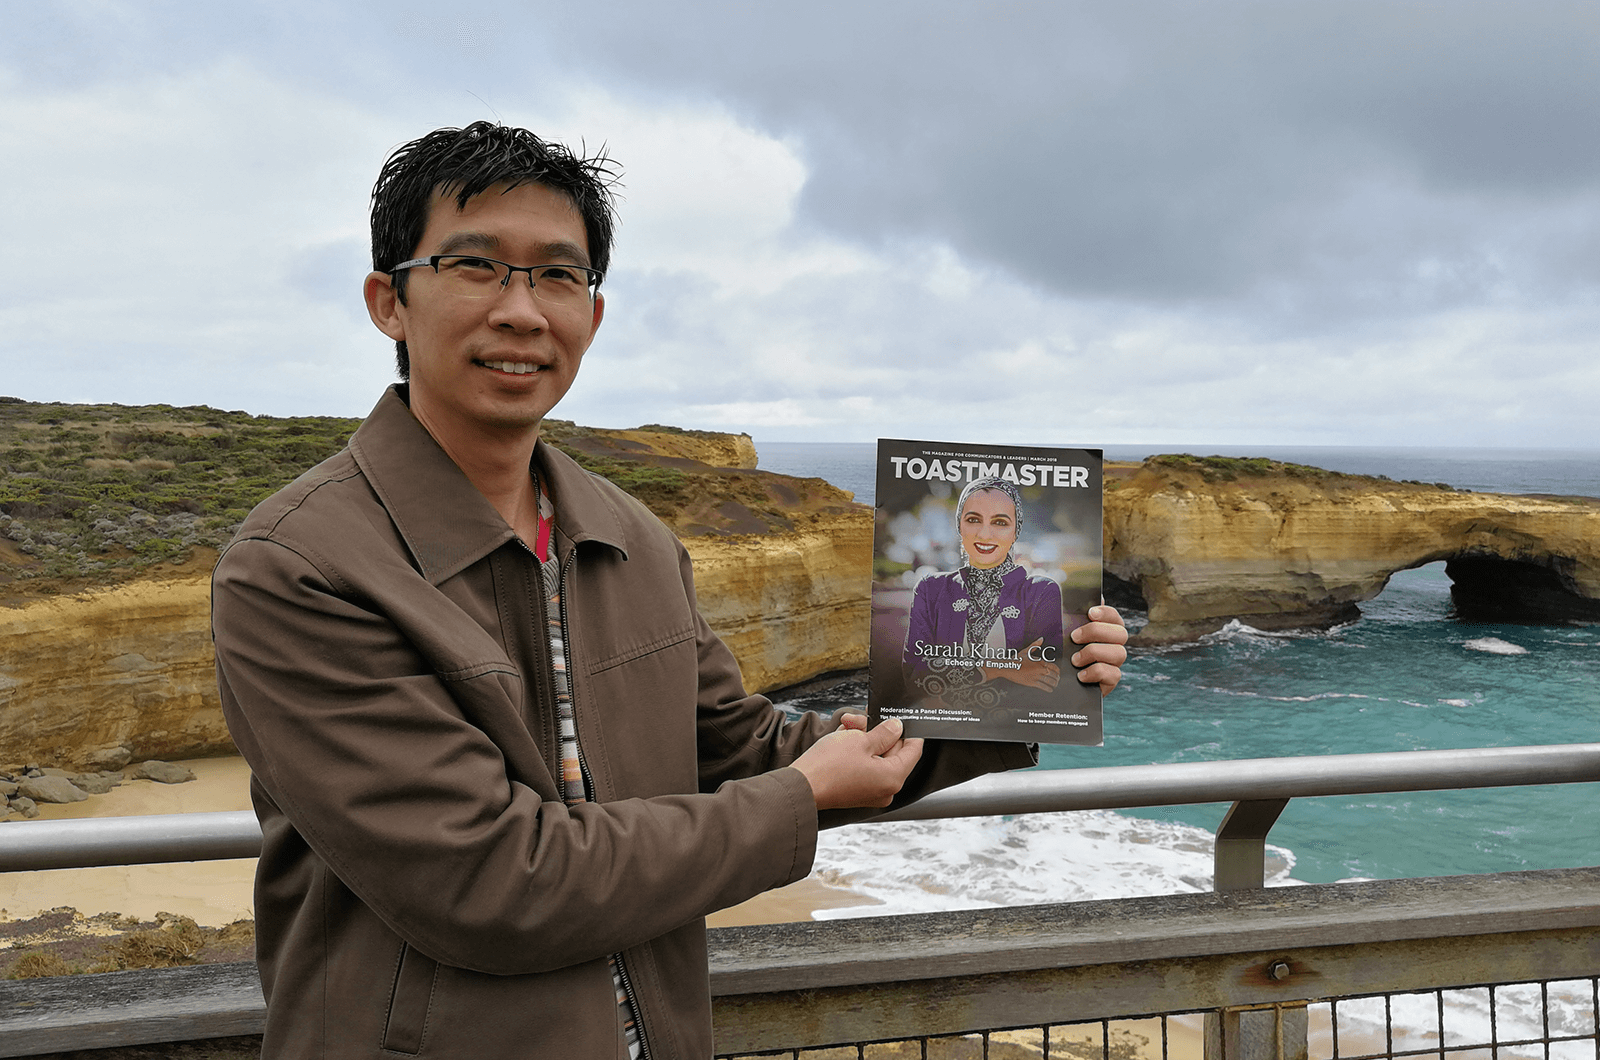 Goh Chee Yong, ACB, of Petaling Jaya, Selangor, Malaysia, at the London Bridge rock formation in Victoria, Melbourne, Australia.